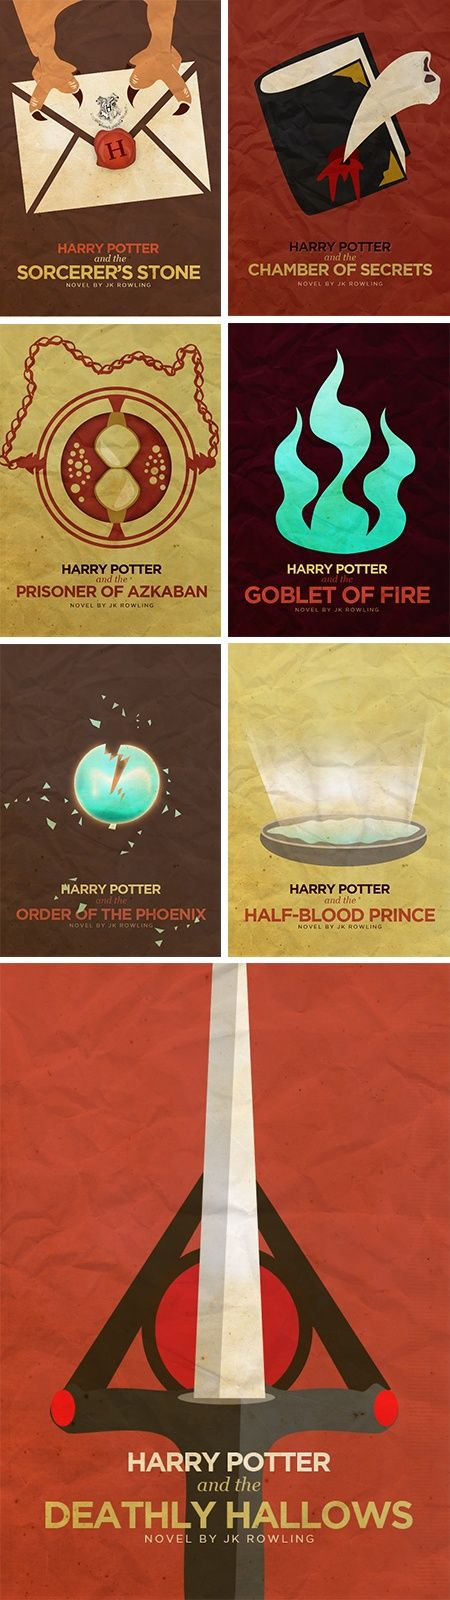 Harry Potter from 1 to